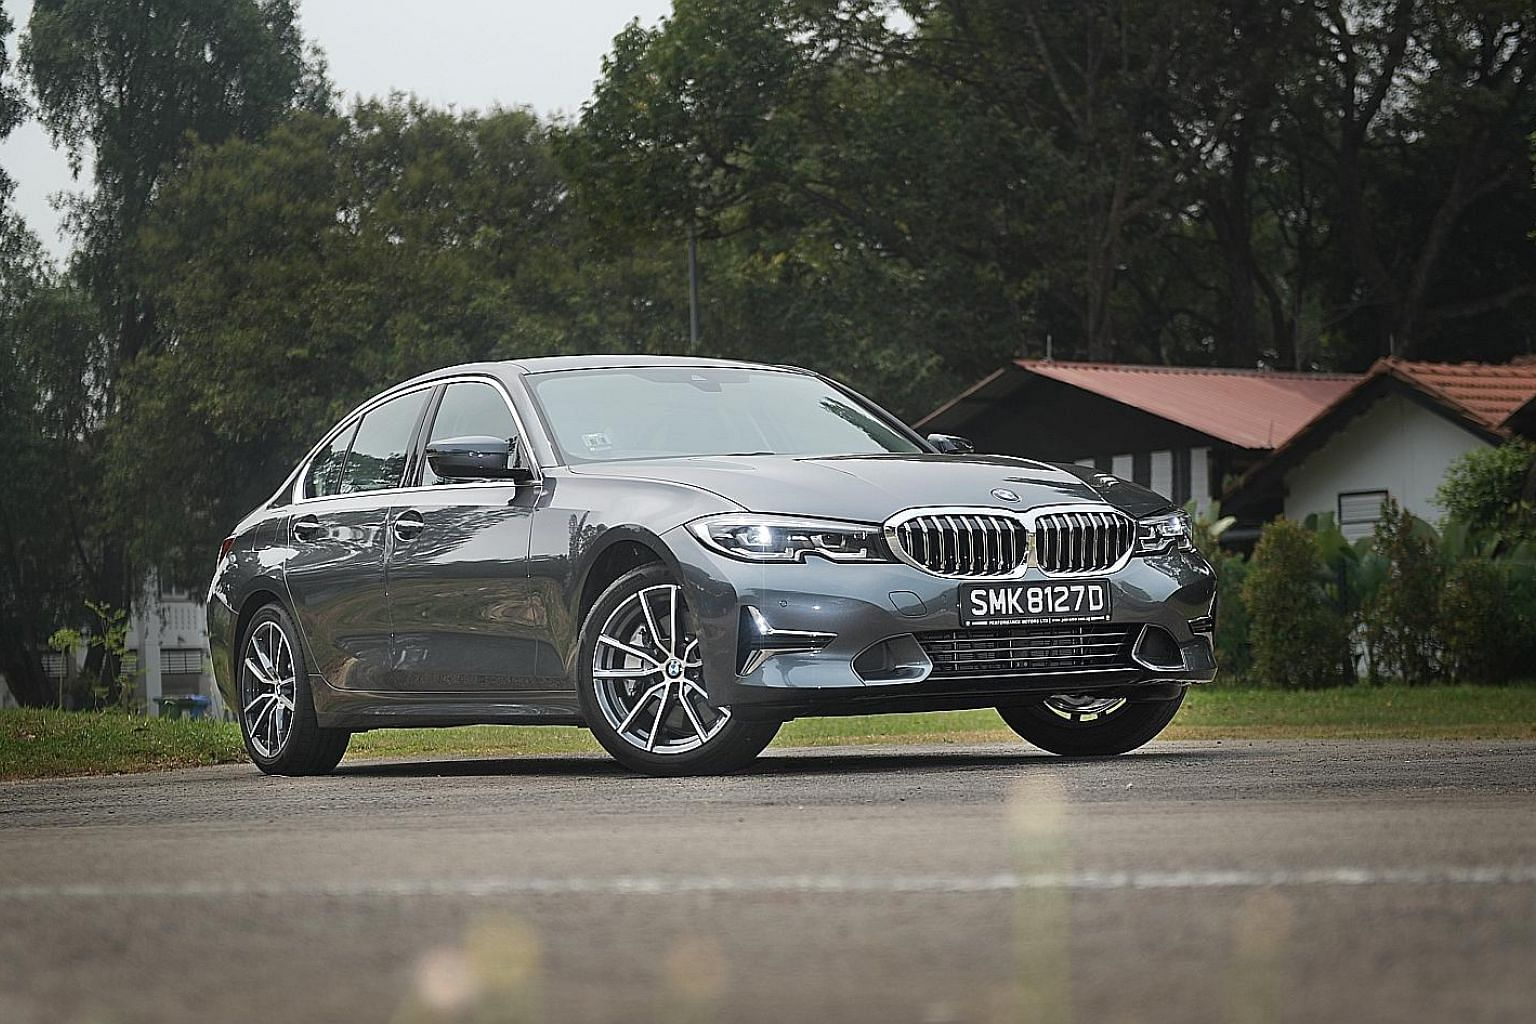 The BMW 330i Luxury excels on straights and wide sweeping bends, and is among the best-handling semi-compact sedans around.